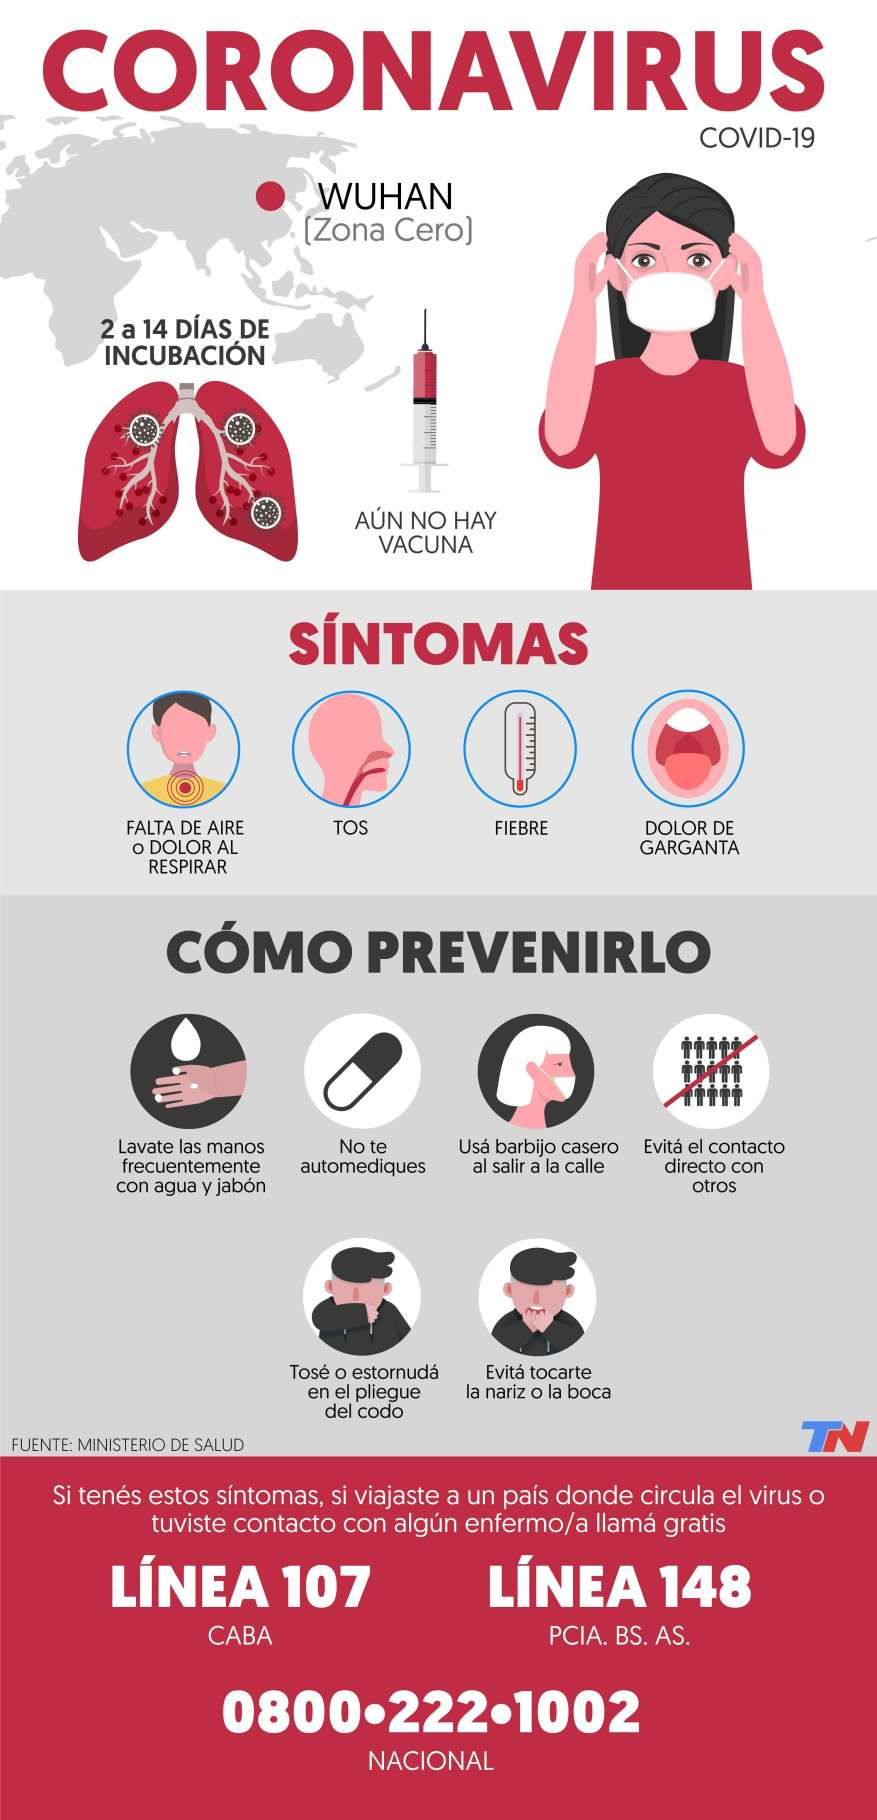 What are the symptoms of coronavirus and how is it spread (Infographic: TN.com.ar).